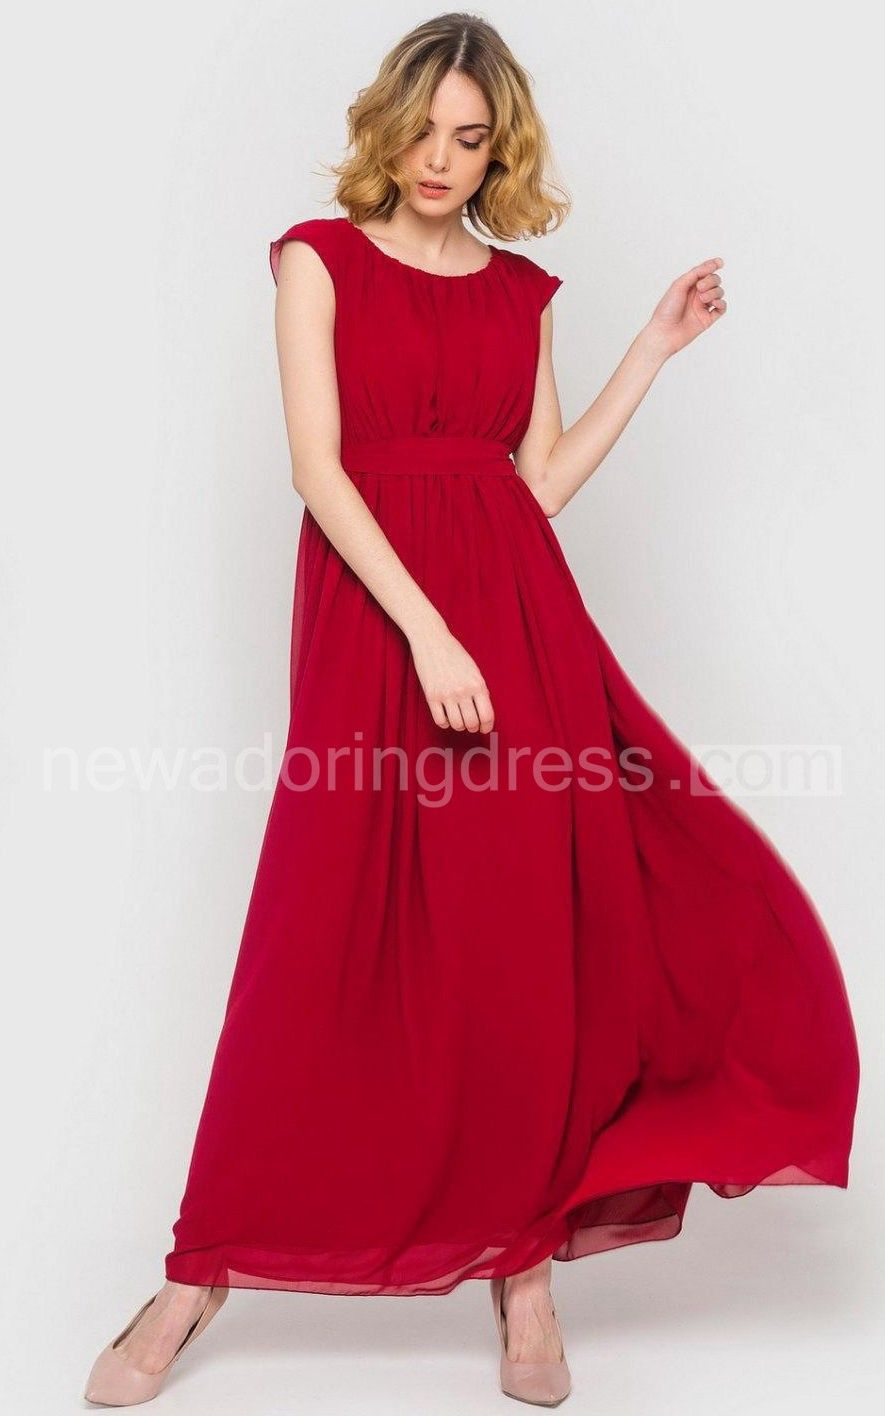 Long chiffon capsleeve bridesmaid dress with sash for my best